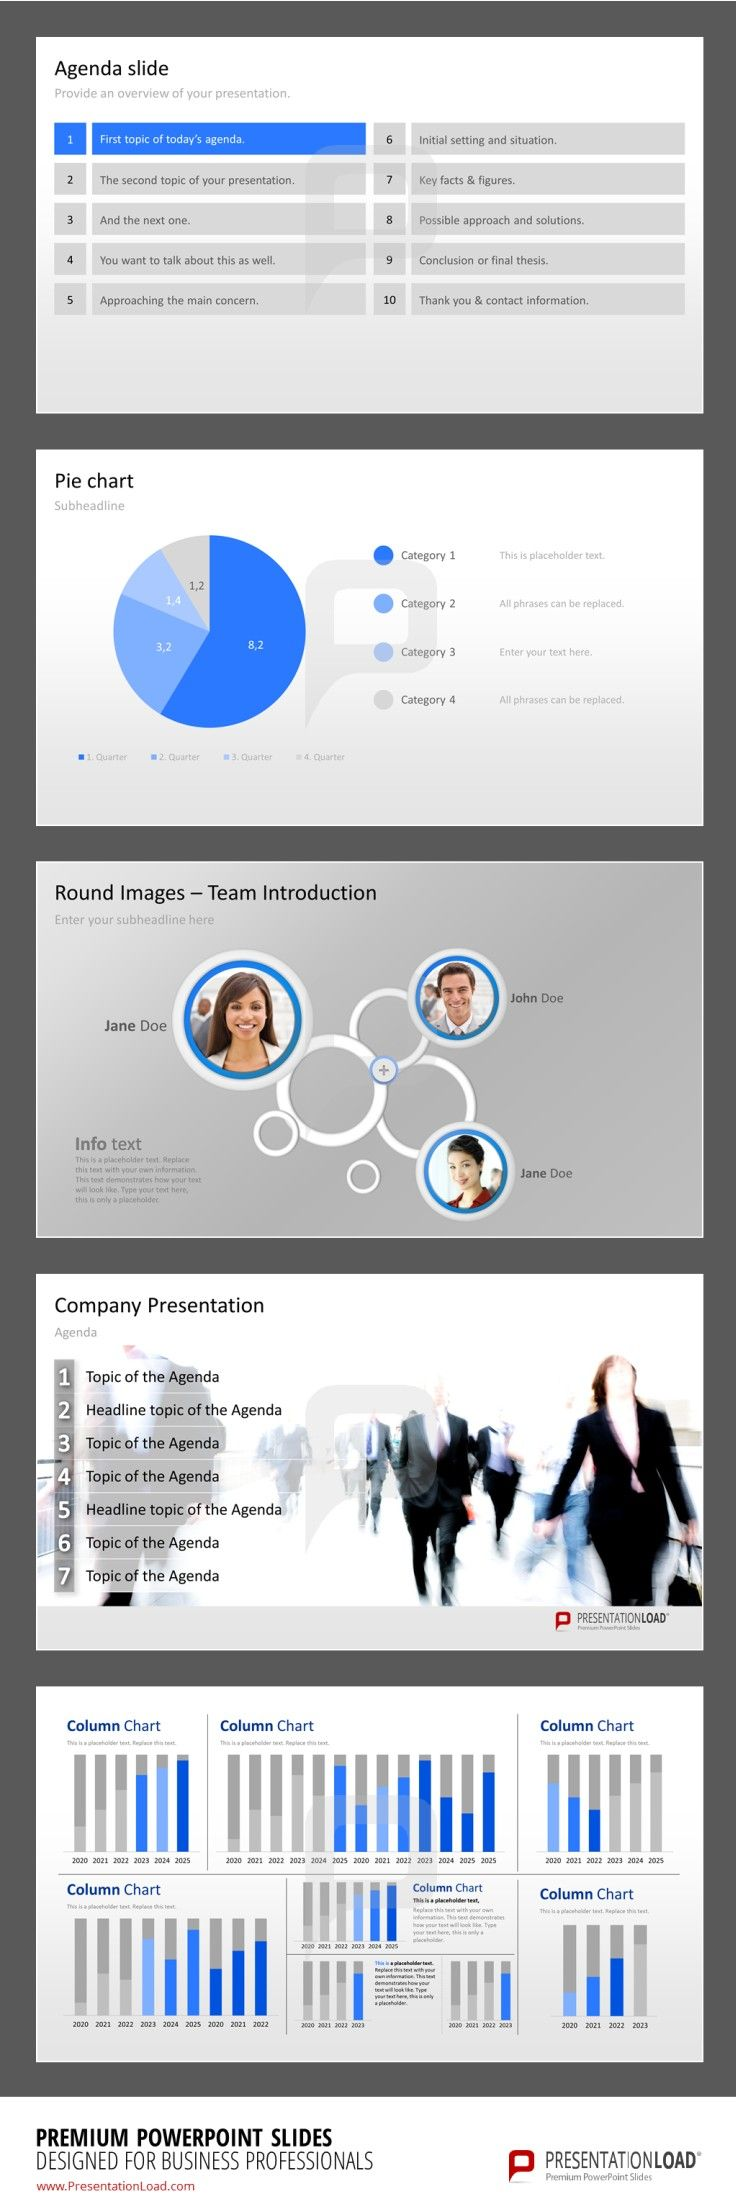 PowerPoint Templates from PresentationLoad  #presentationload http://www.presentationload.com/powerpoint-charts-diagrams/